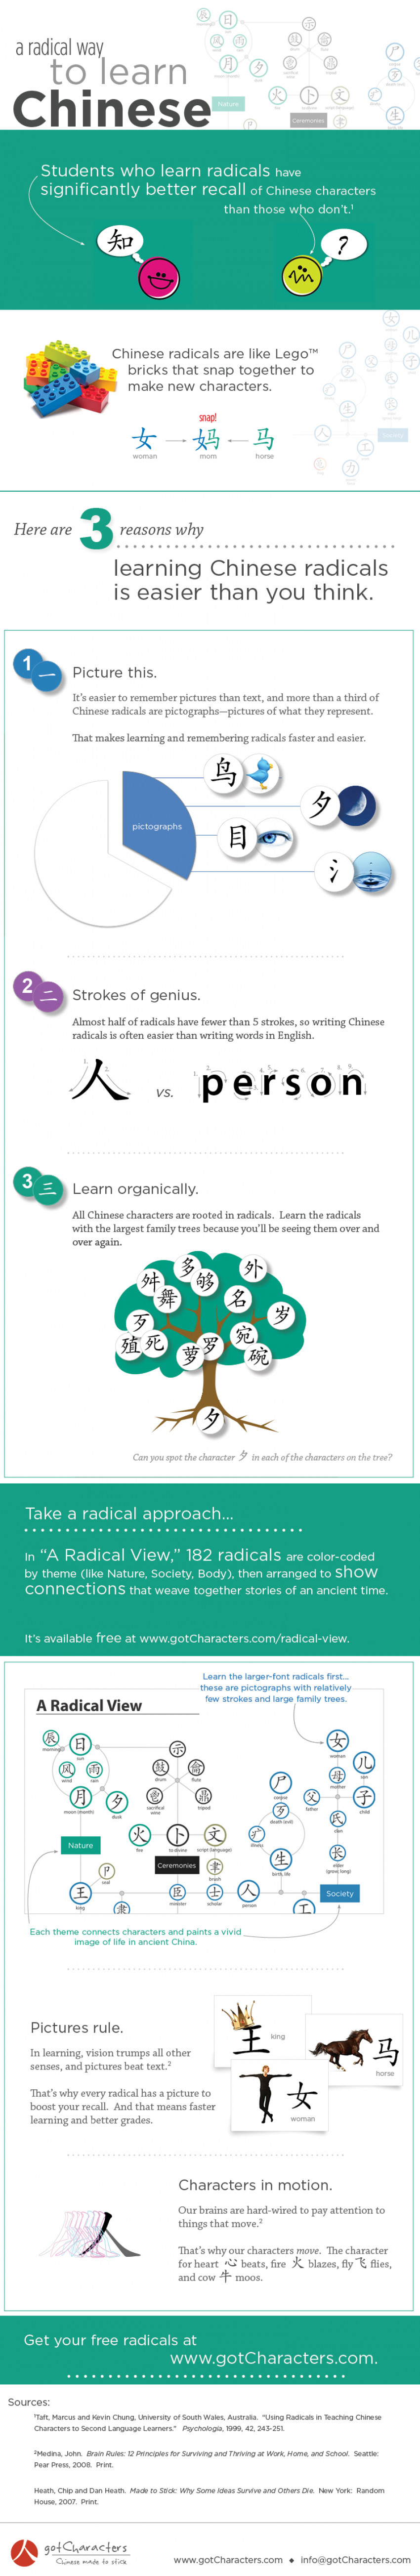 A Radical View of Chinese Characters